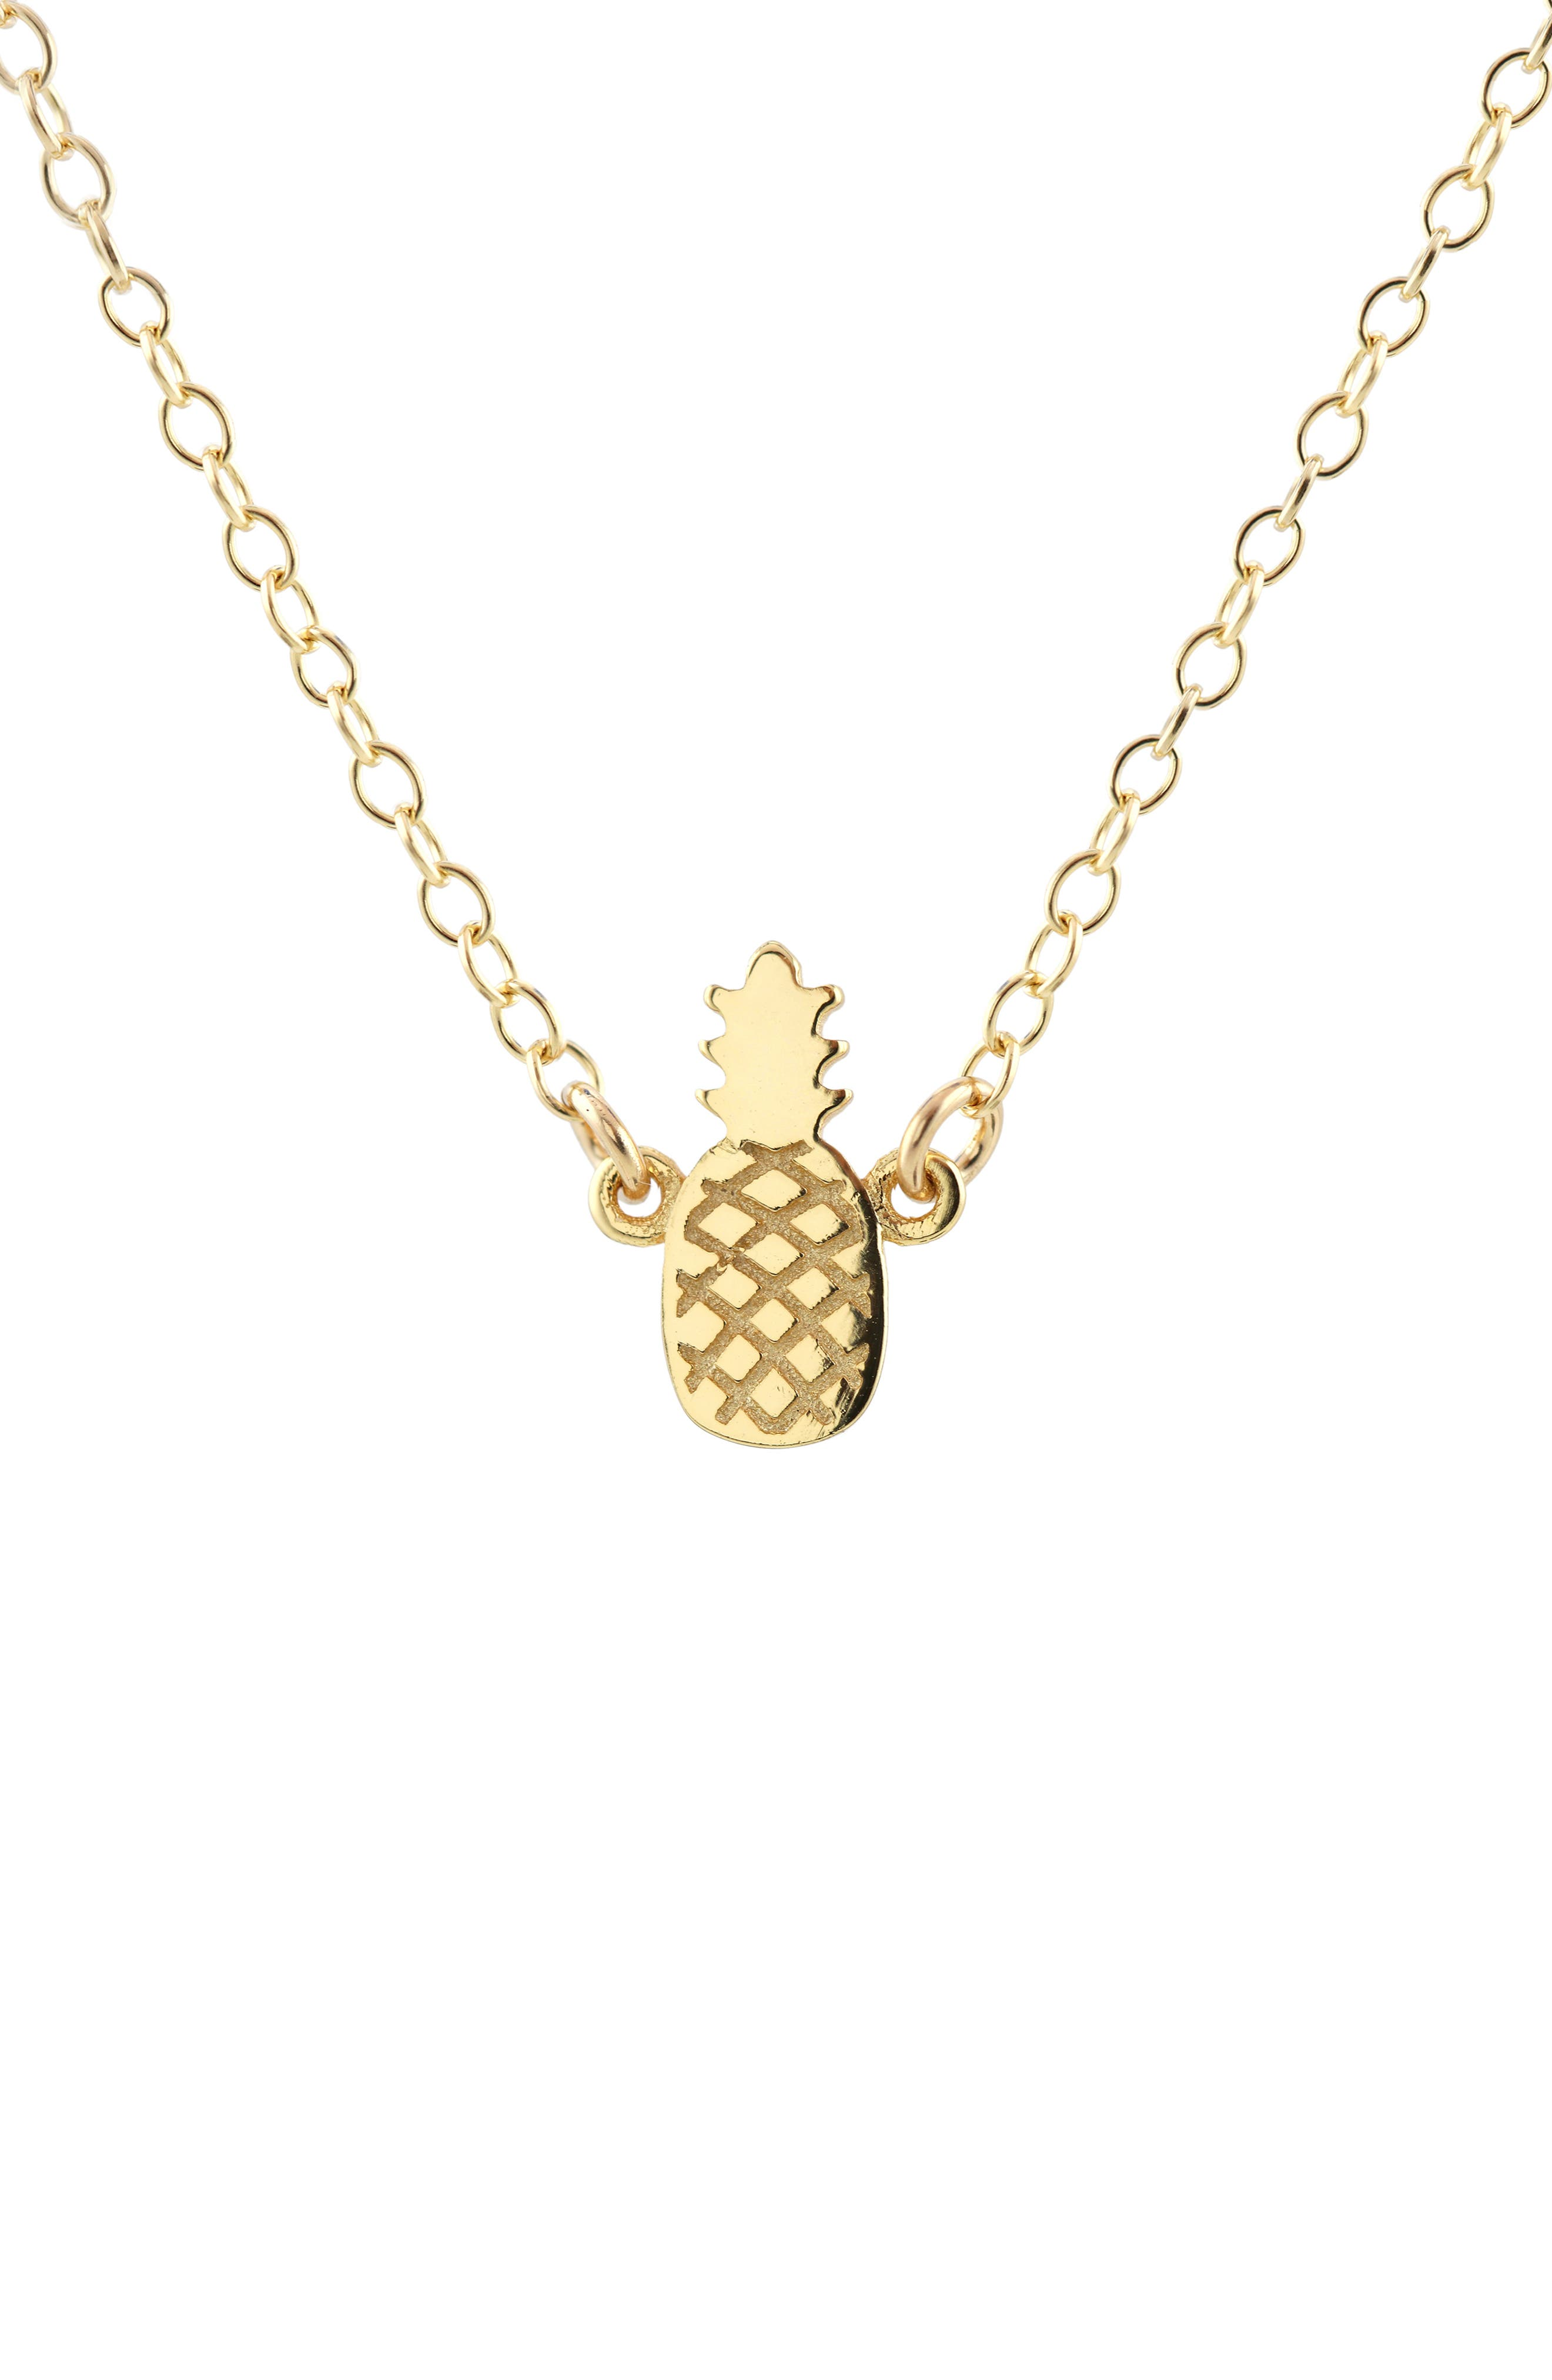 Pineapple Charm Necklace,                         Main,                         color, Gold